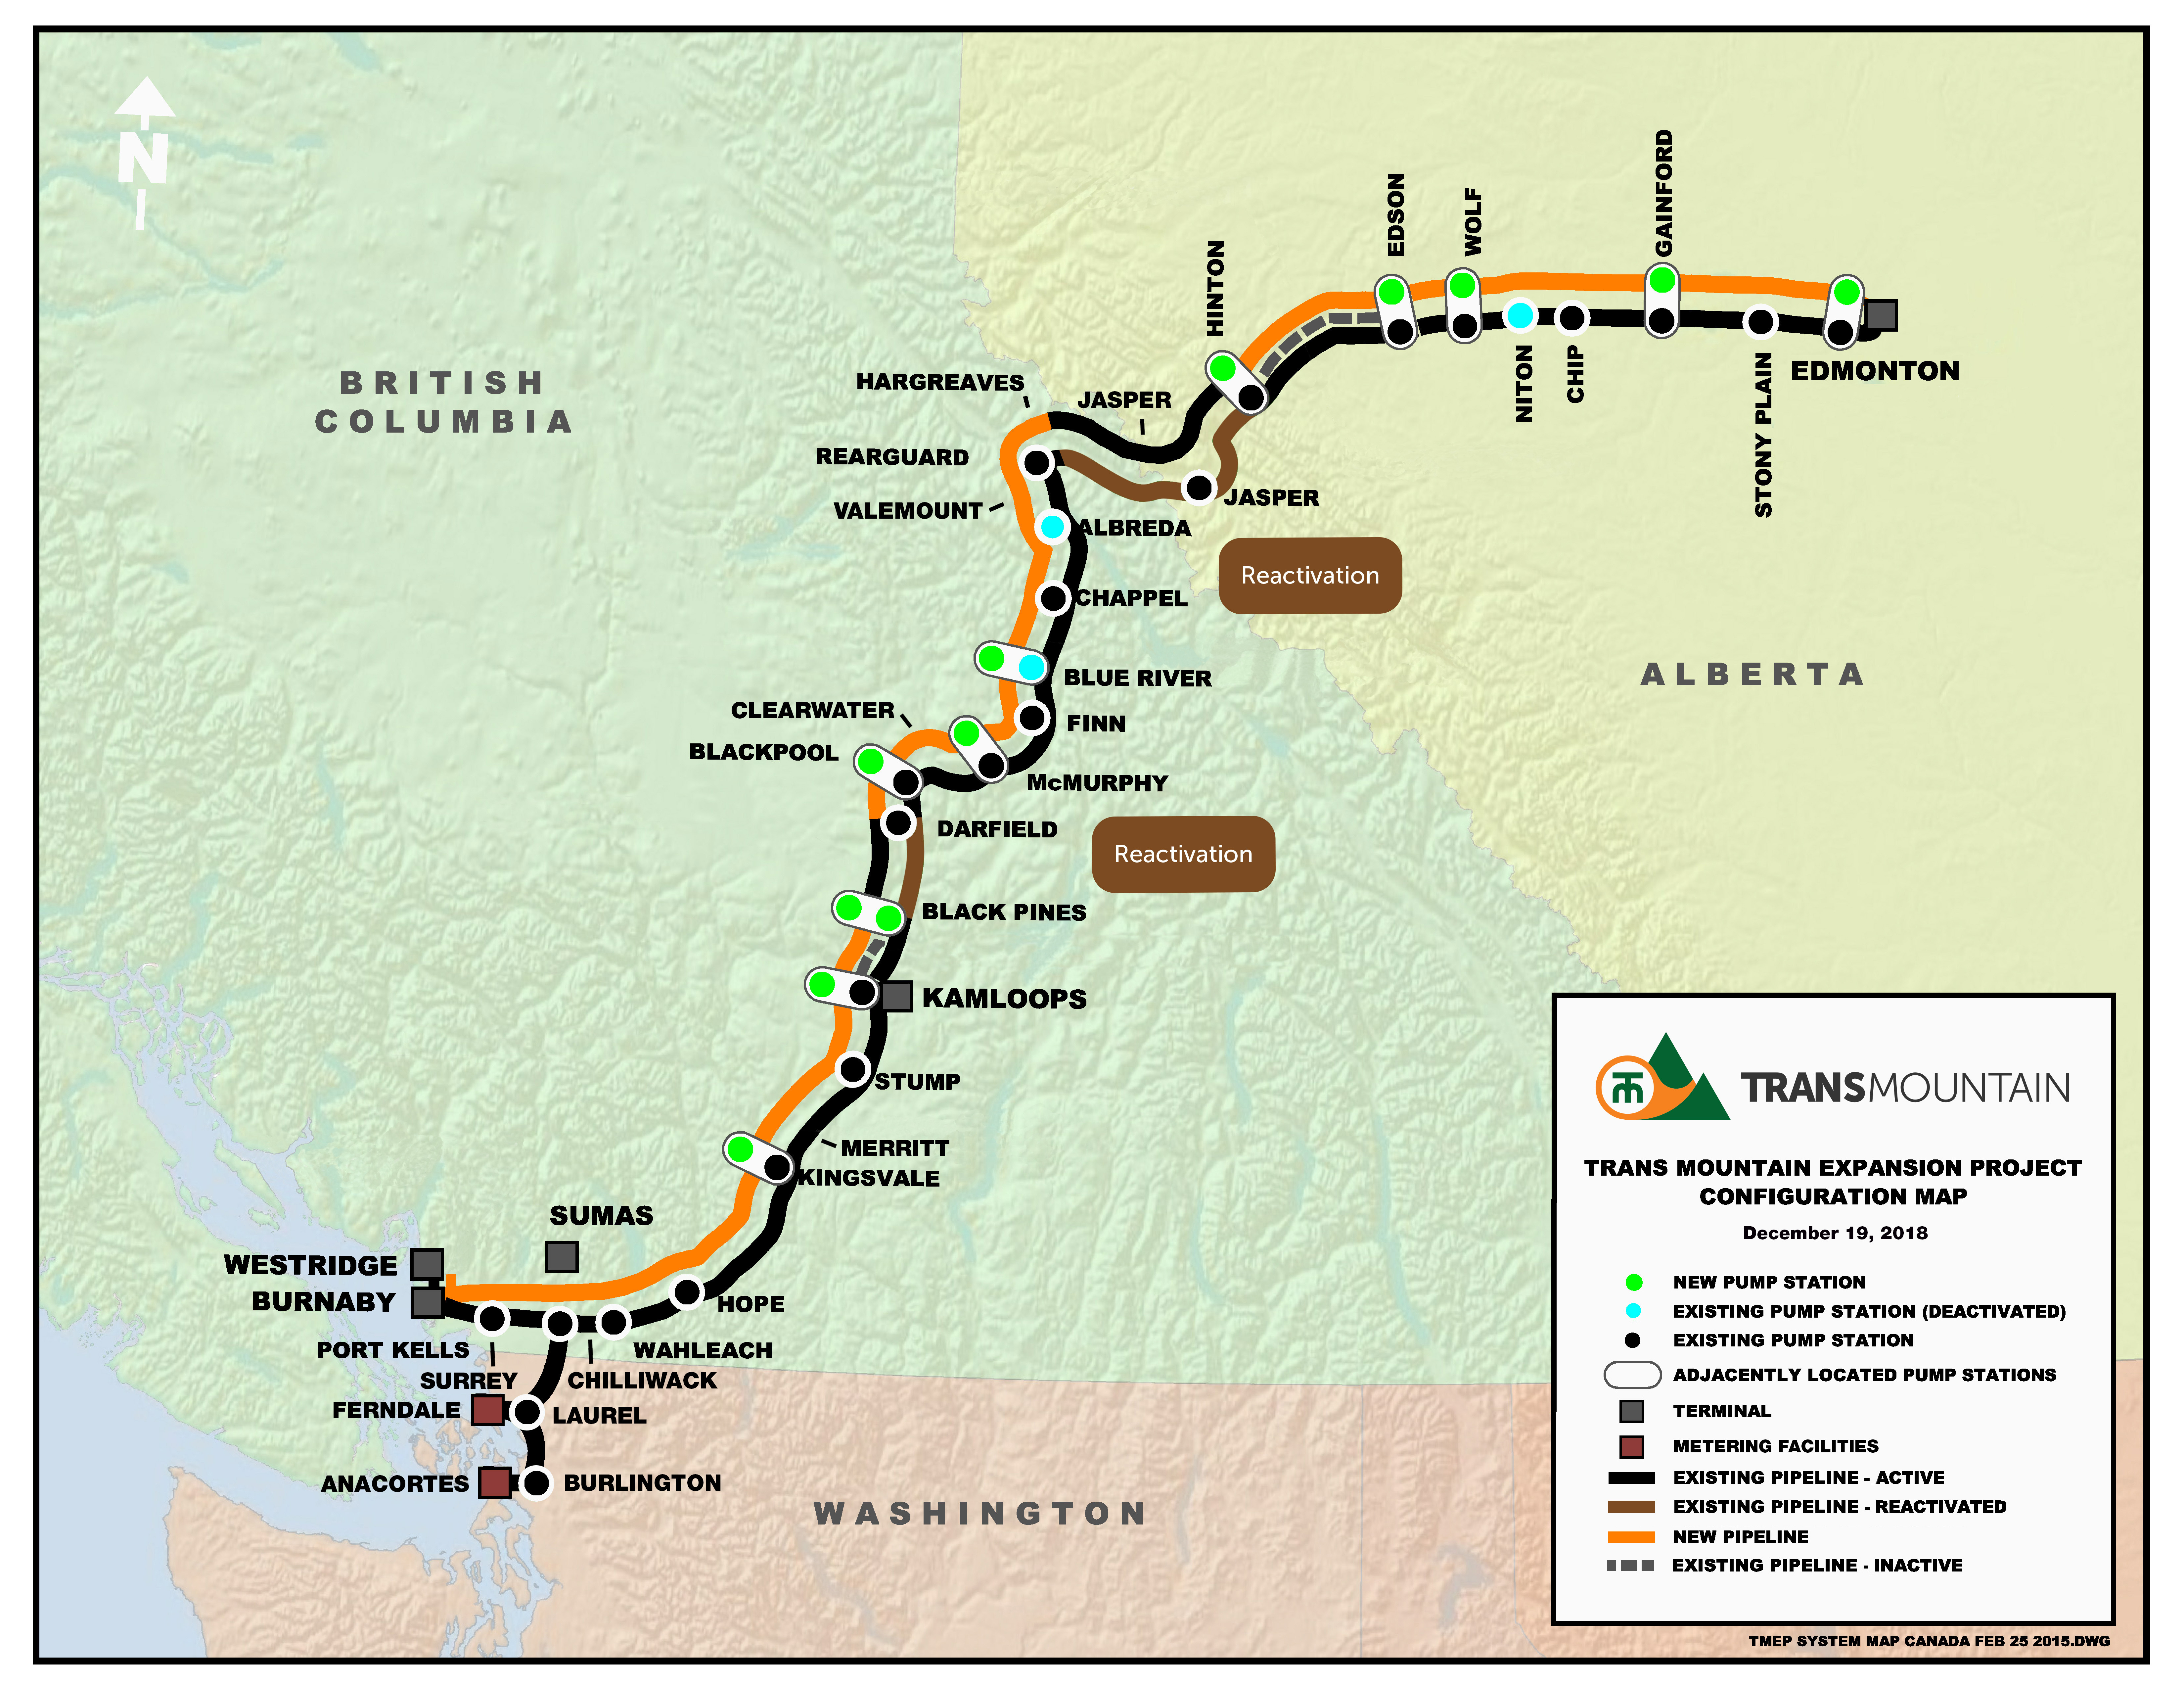 Map of the Trans Mountain Expansion Project